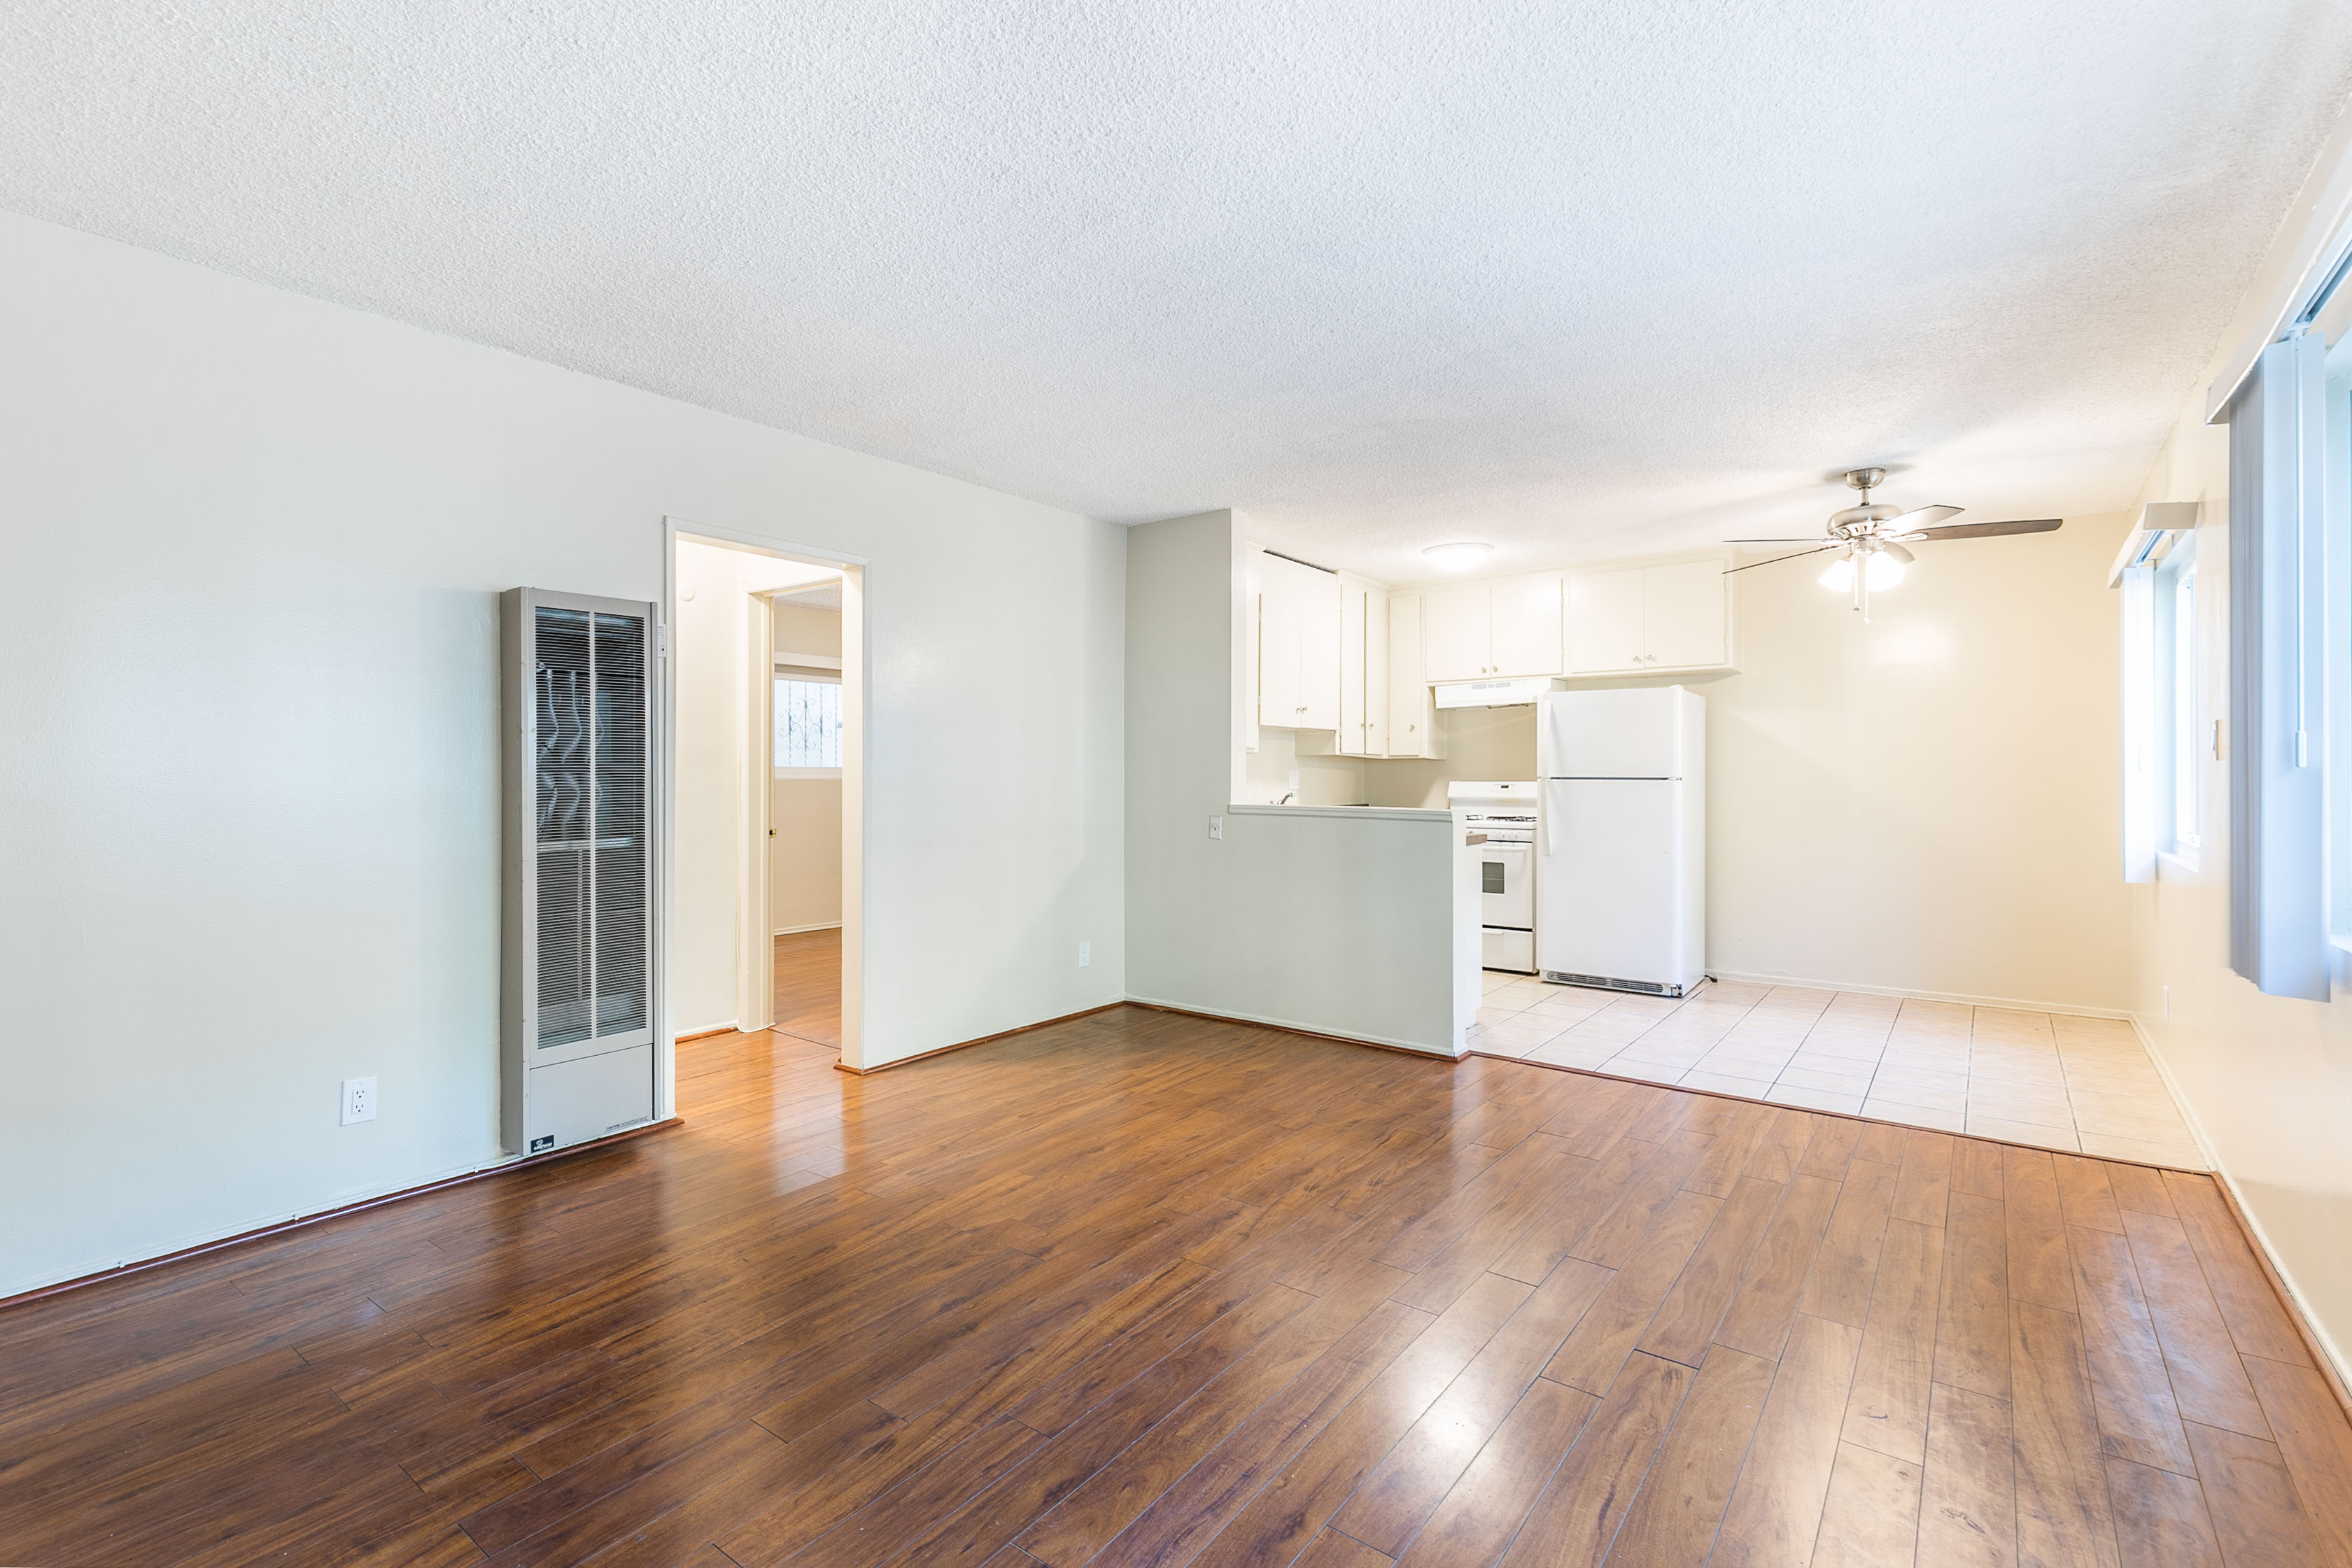 C-U-T-E TWO BEDROOM/1 BATH WITH HARDWOOD FLOORS AND AMPLE CLOSET SPACE!